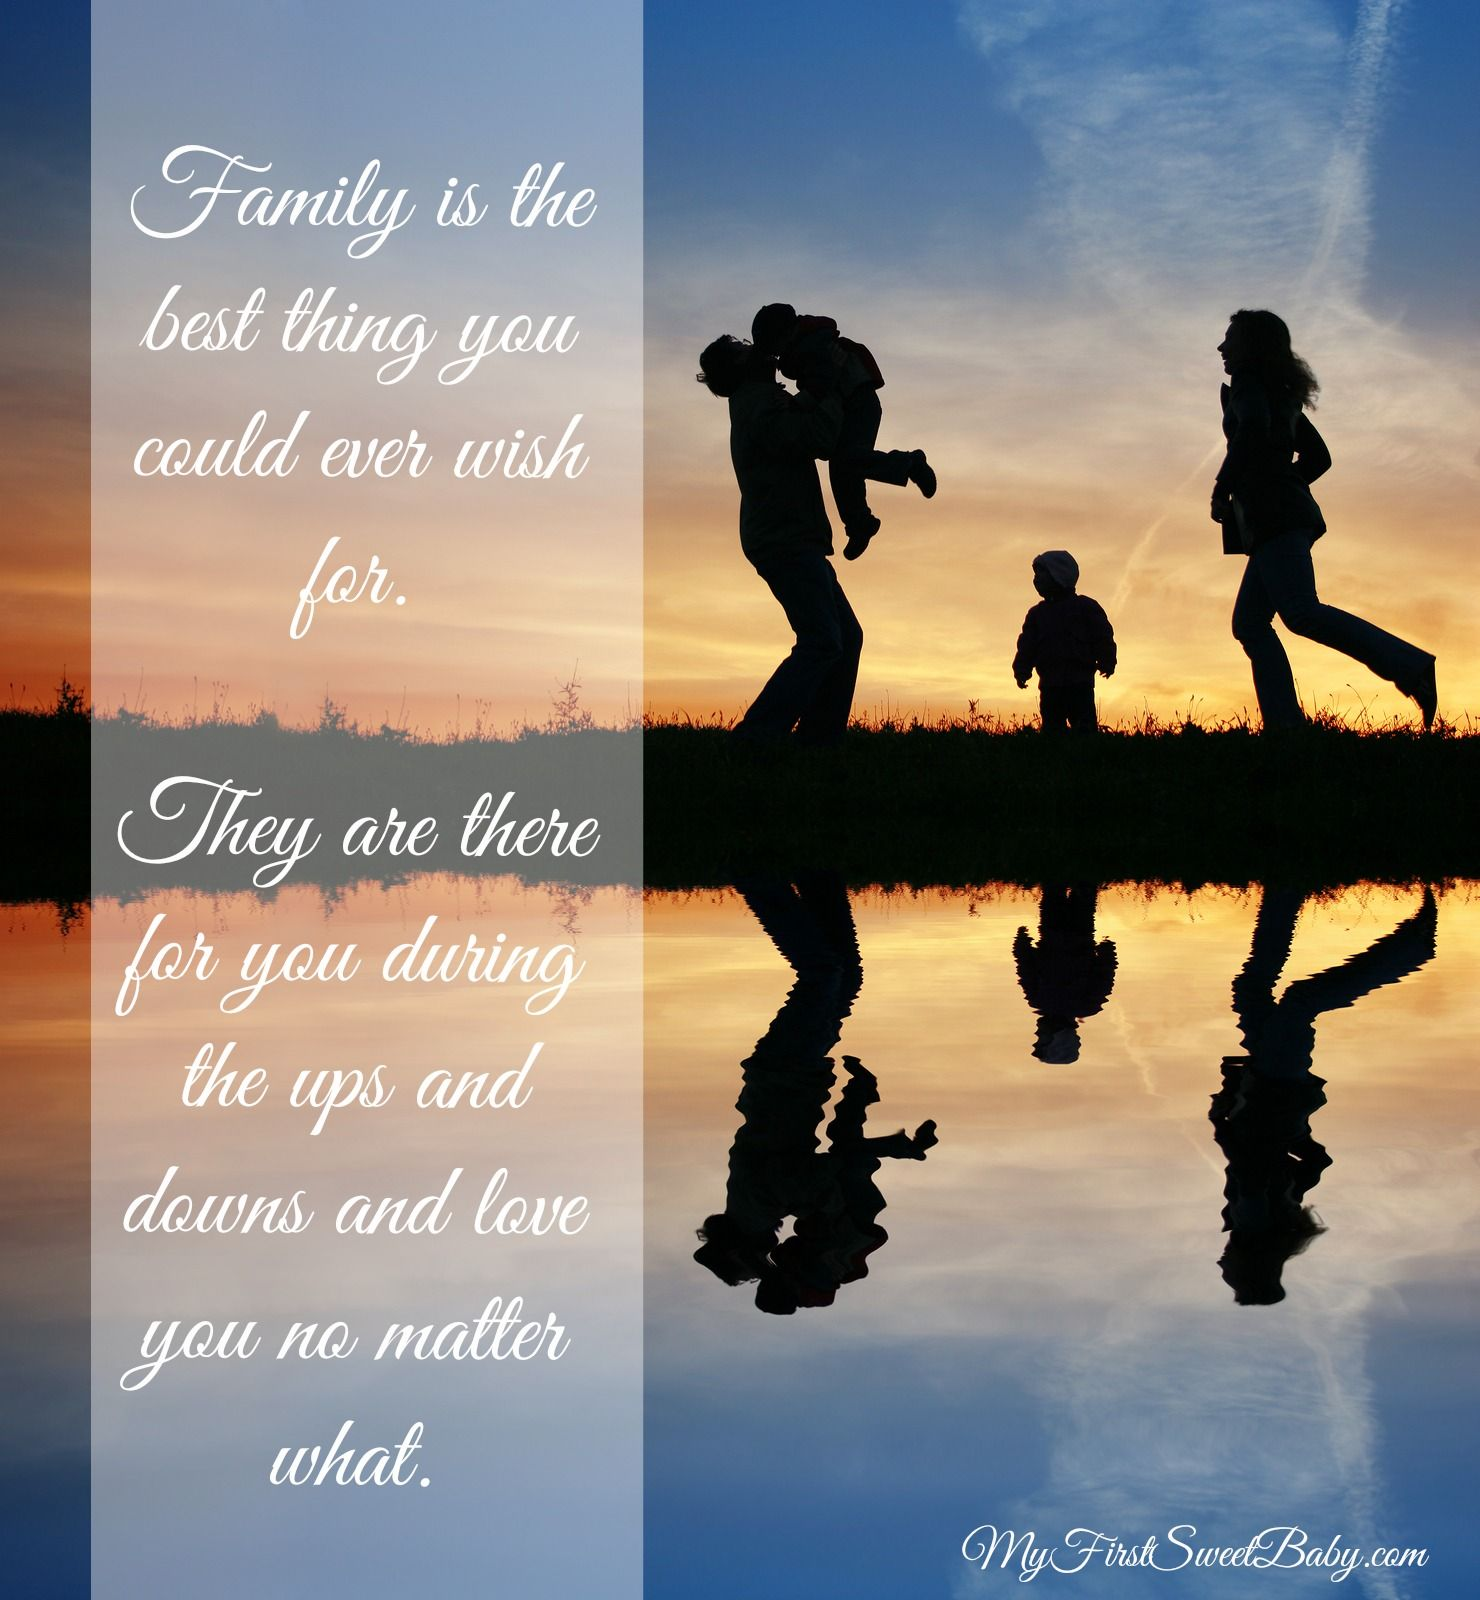 Family is truly the best thing you could ever wish for